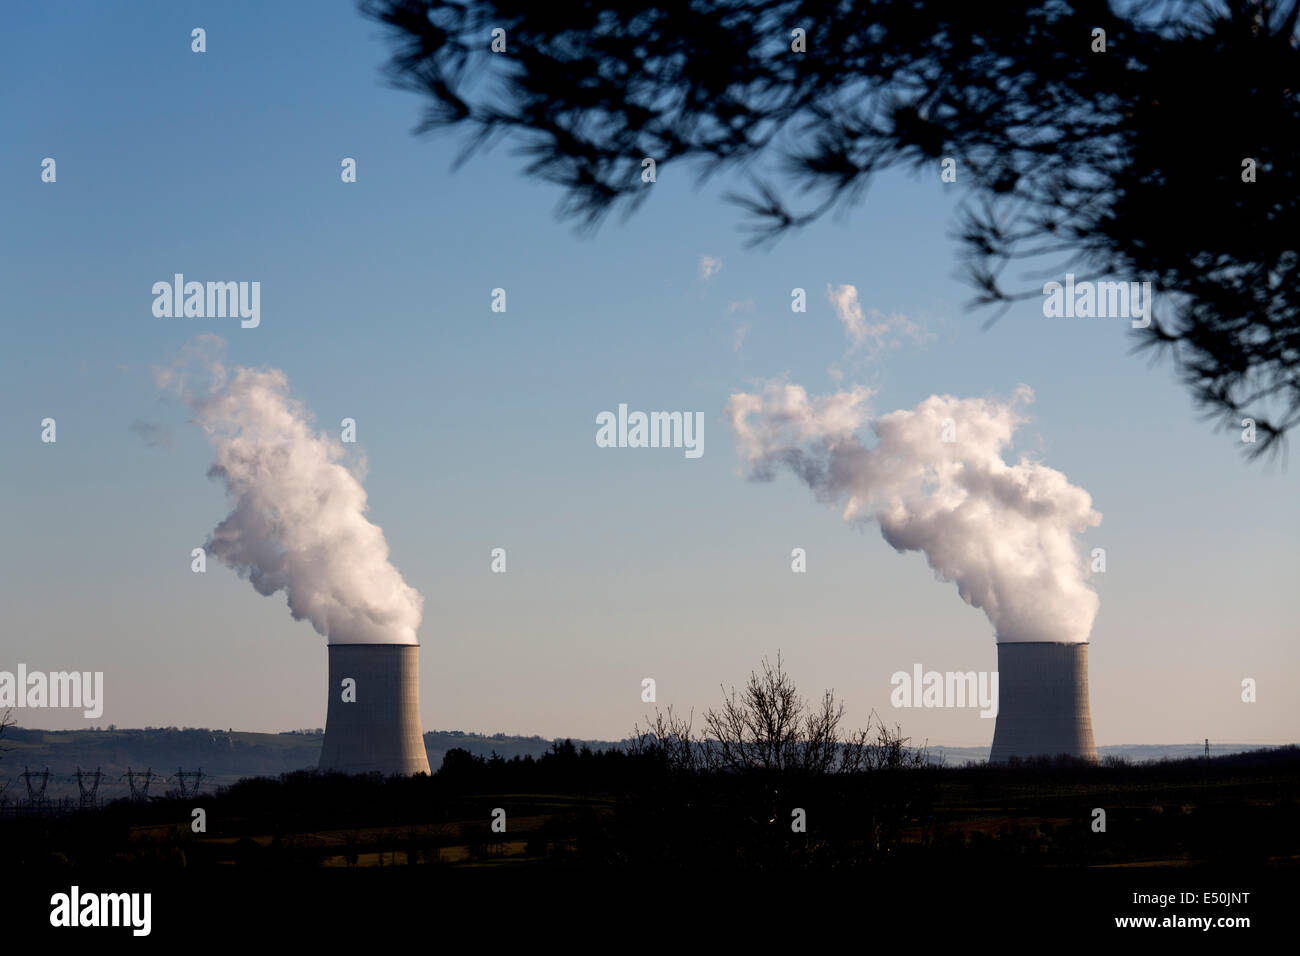 Nuclear plant energy France - Stock Image